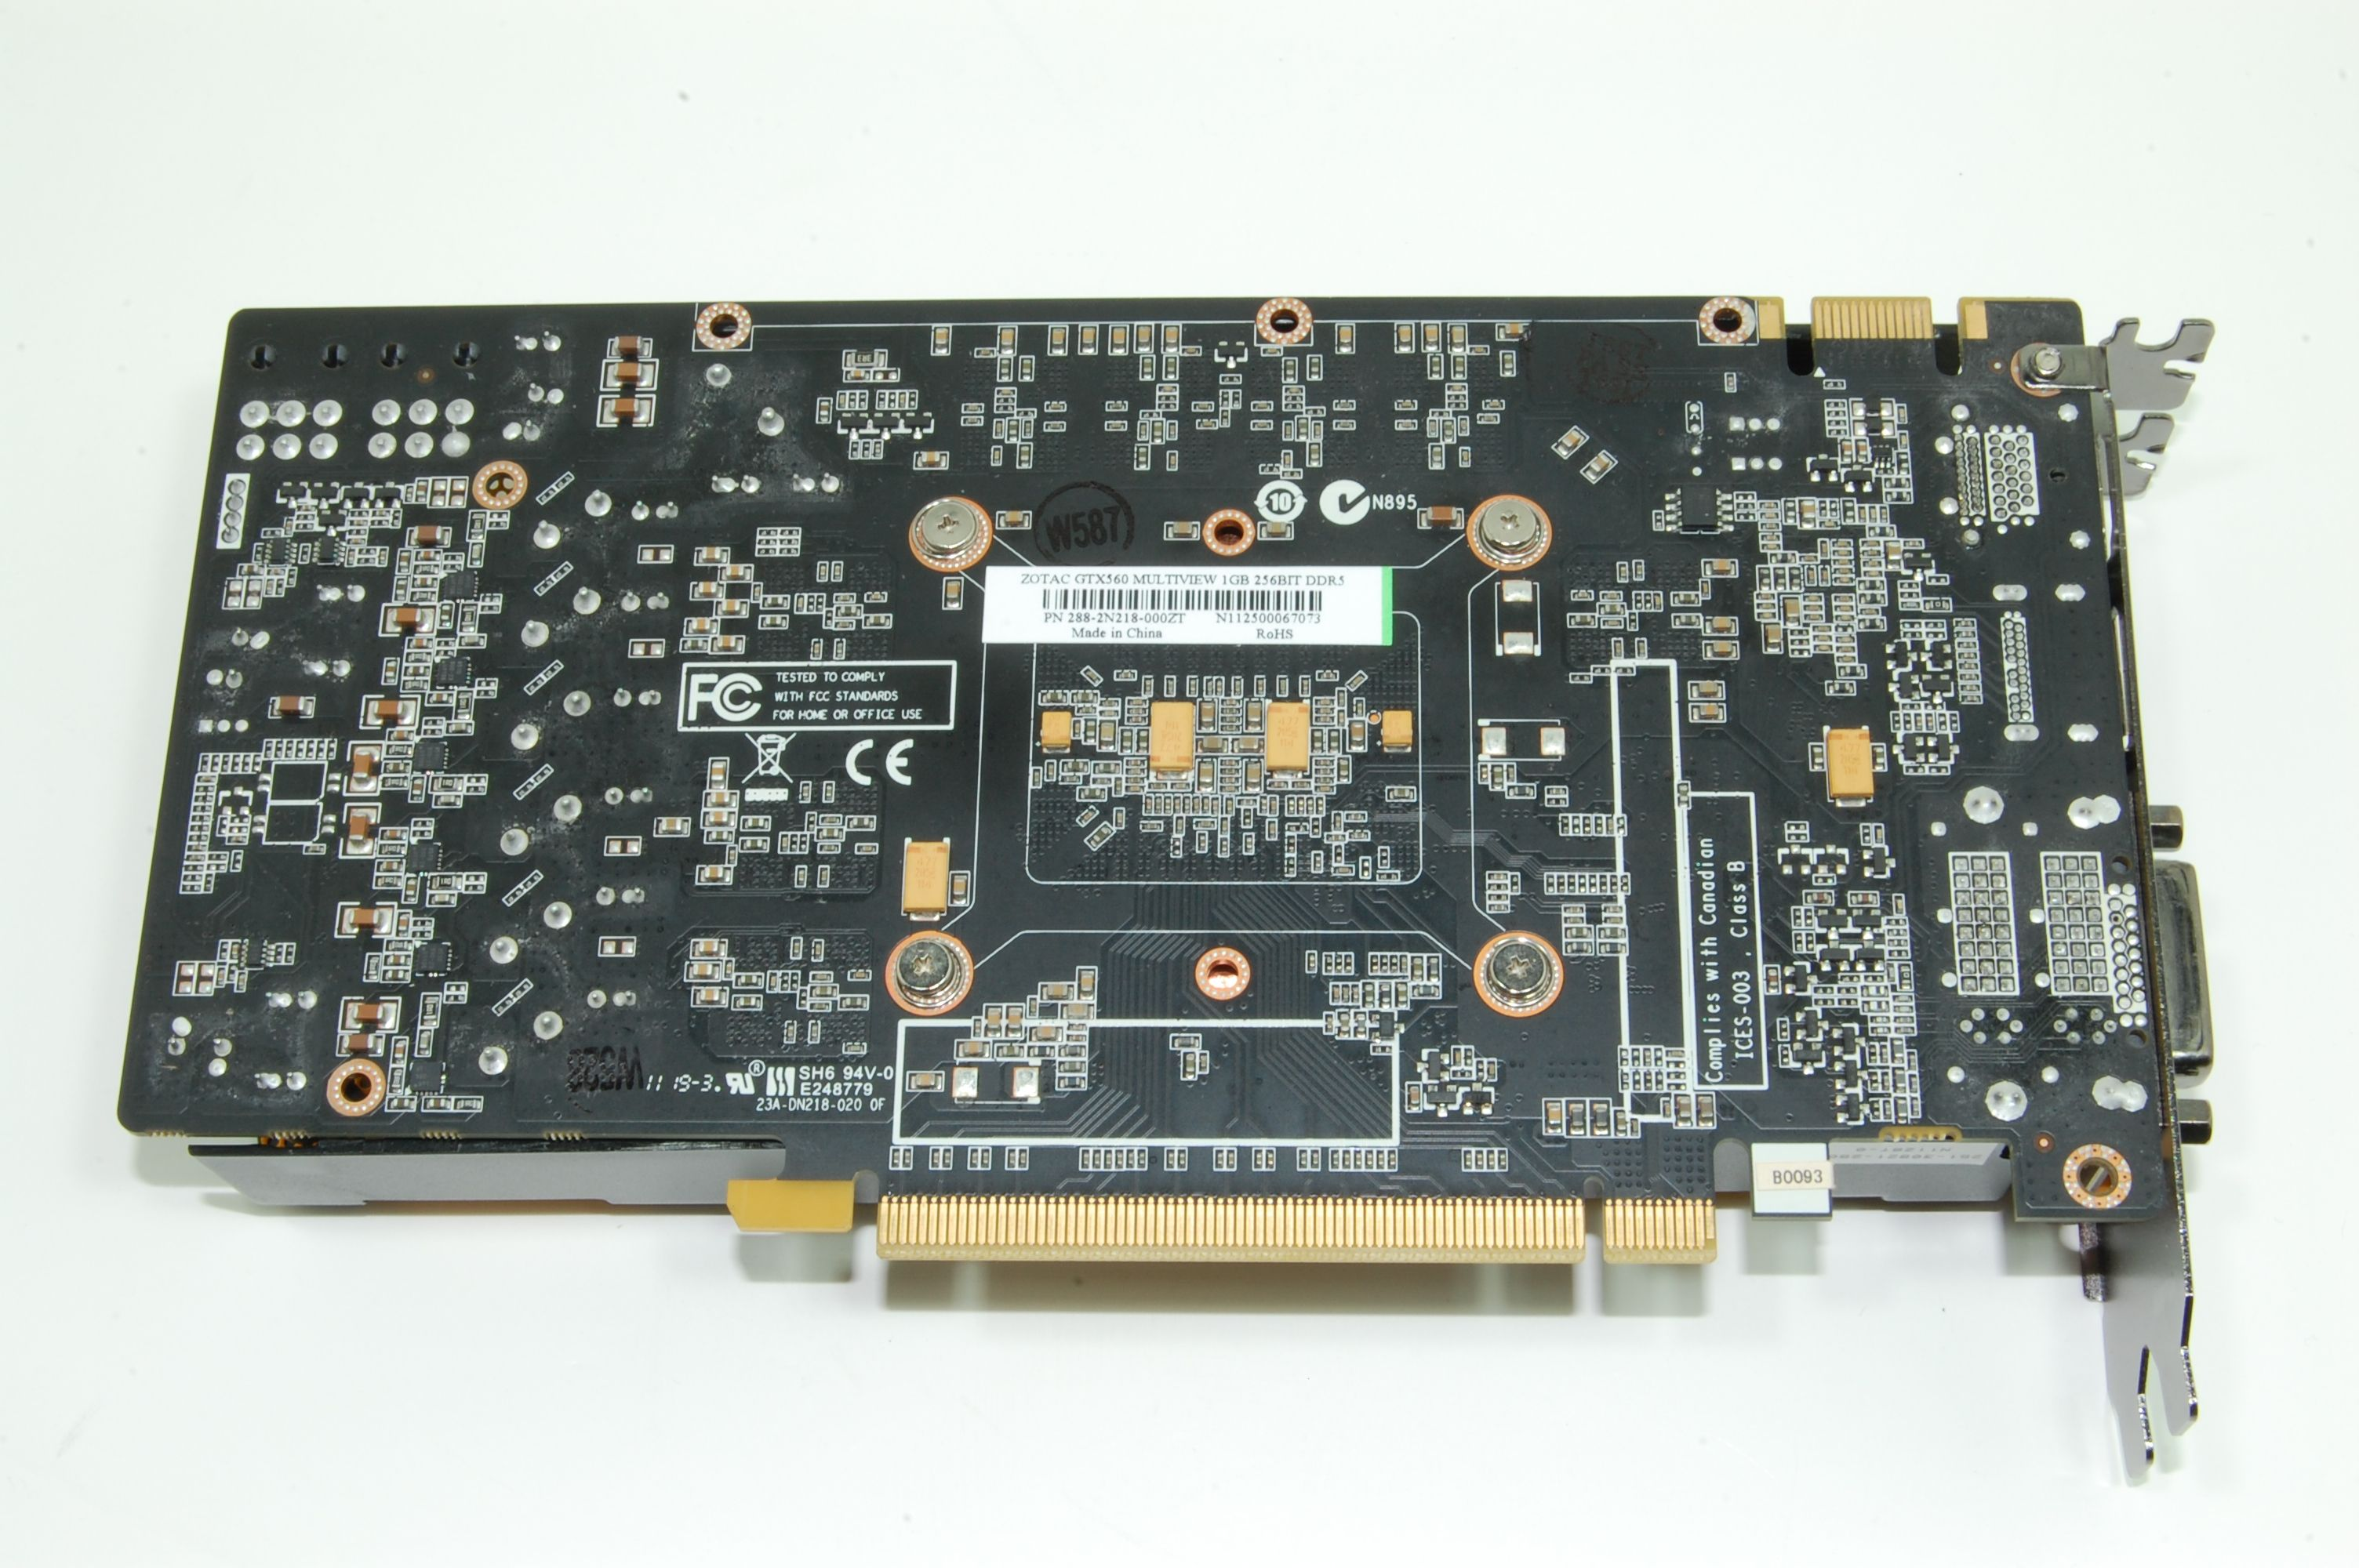 Zotac GTX 560 Multiview PCB